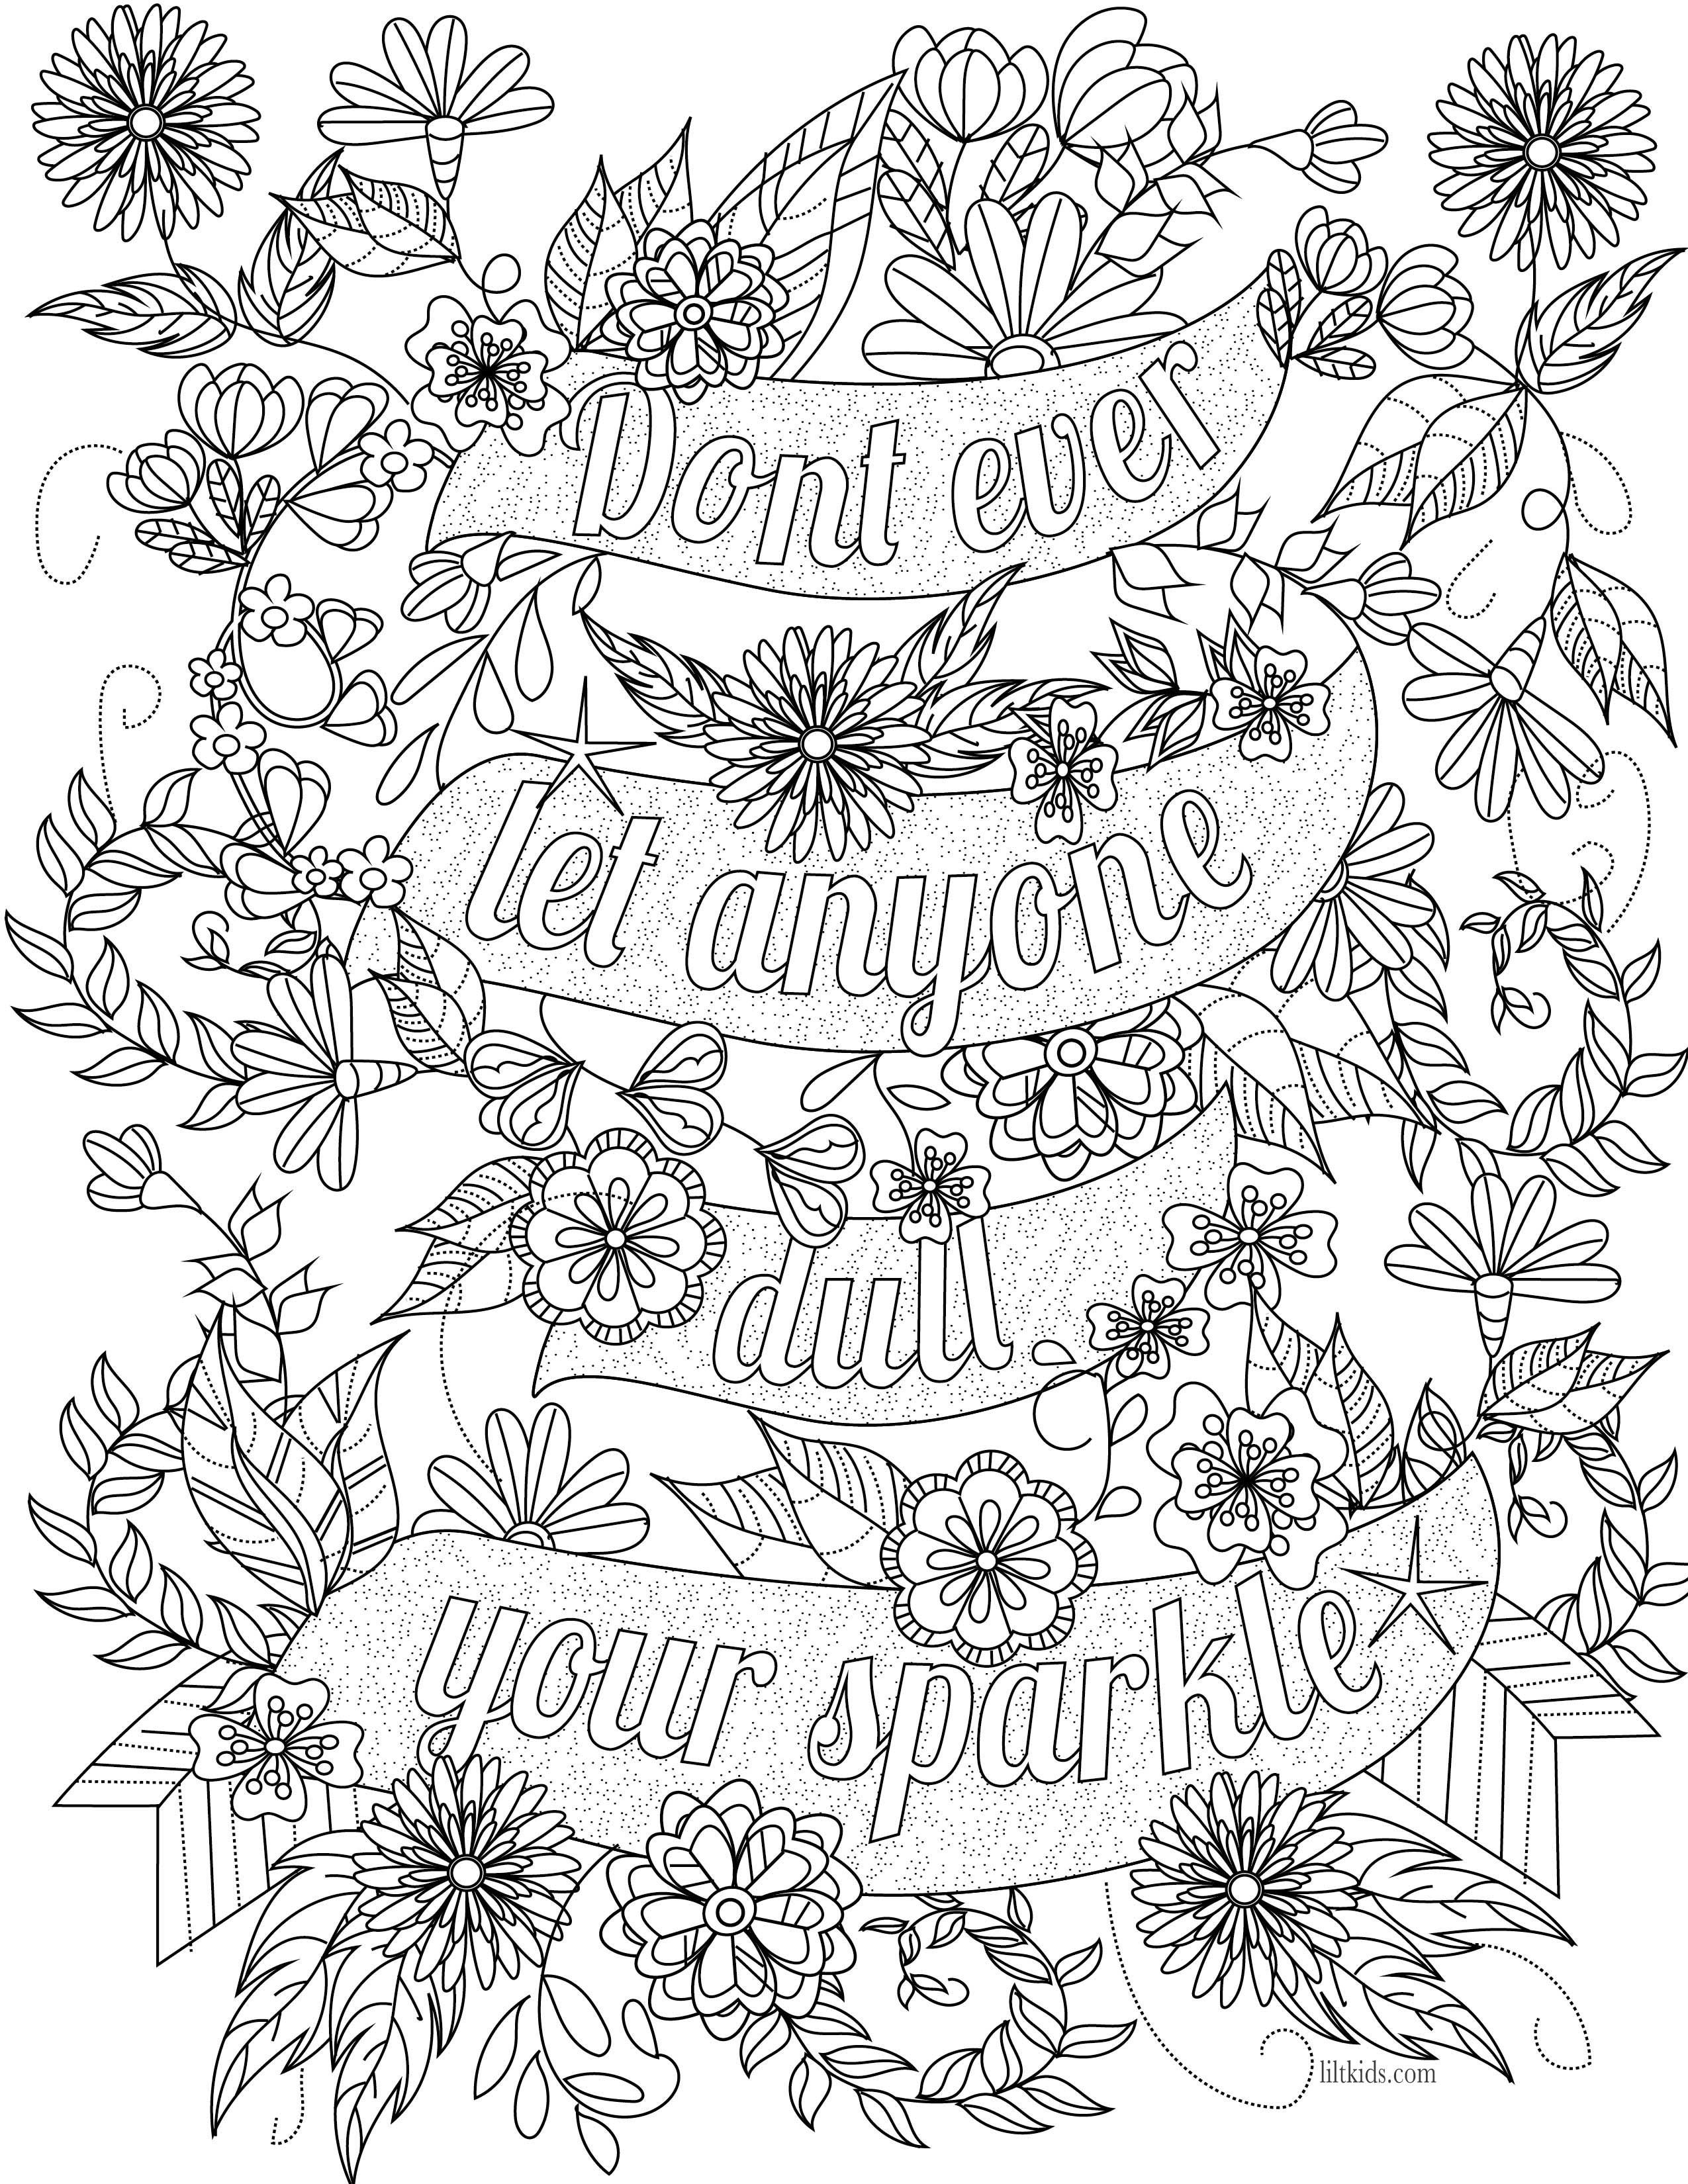 Hamilton Musical Coloring Pages  Download 13s - Save it to your computer